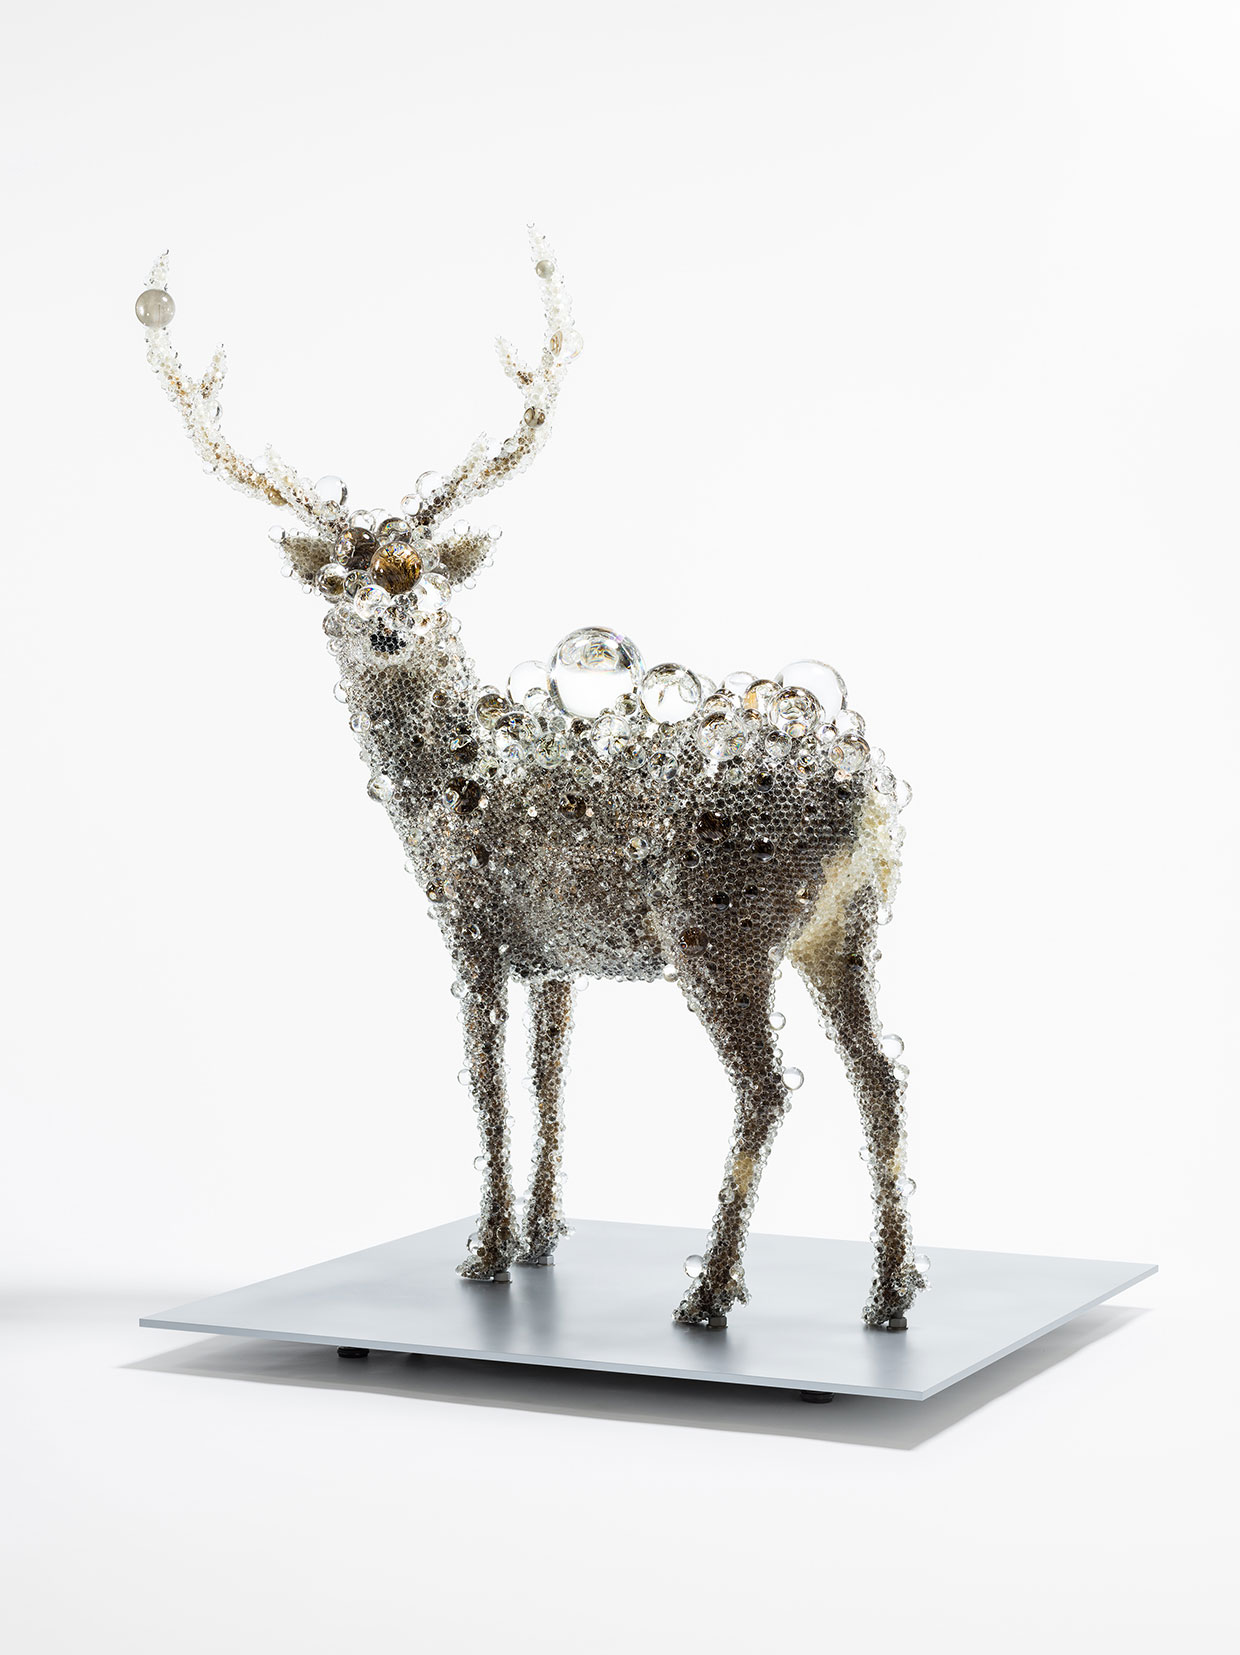 Kohei Nawa, PixCell Deer #44, 2016. Foto: Courtesy of Omer Tiroche Gallery, London